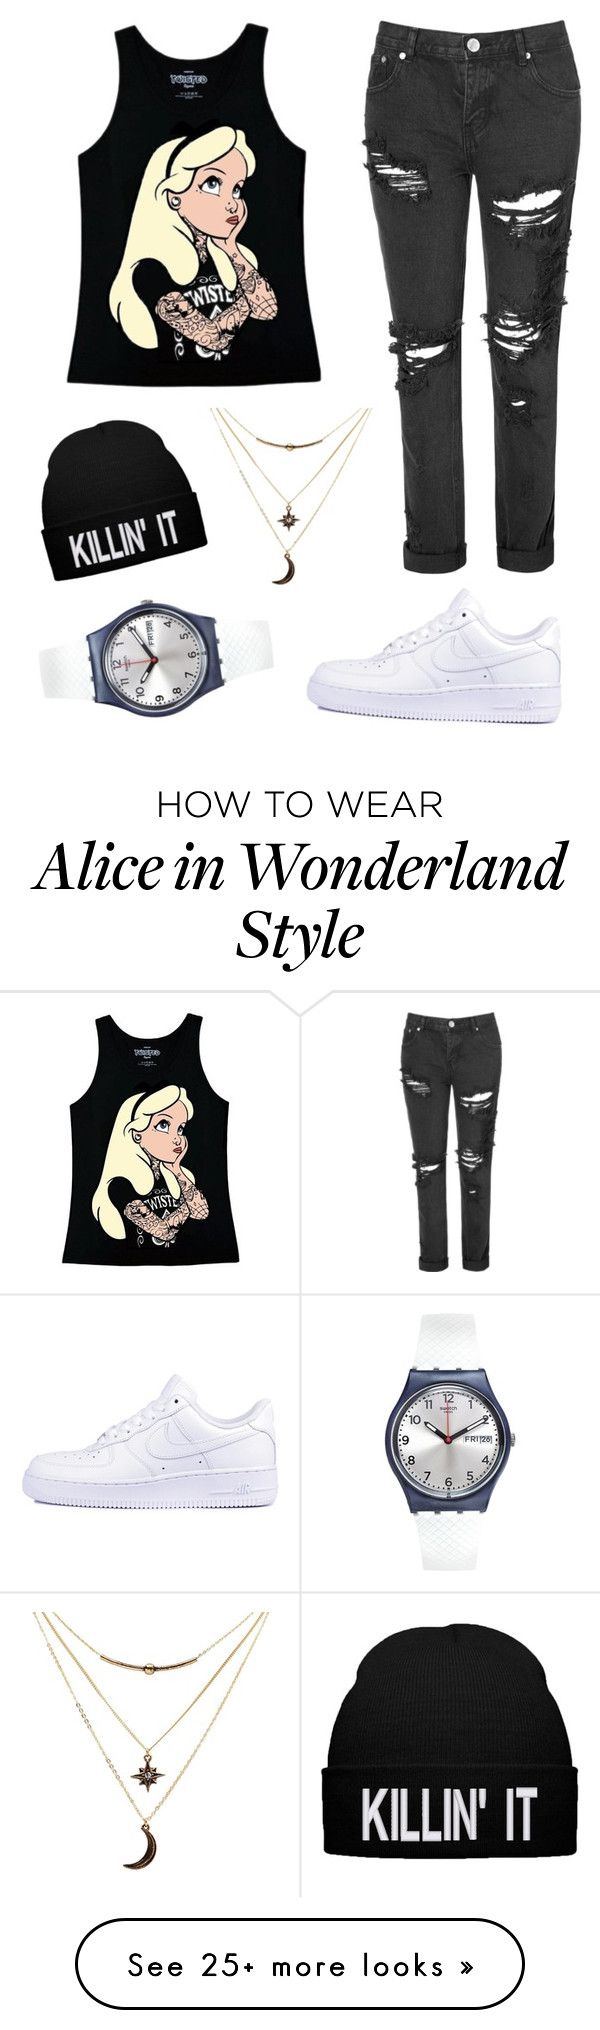 """Black Friday"" by bonitasylva on Polyvore featuring Disney, Glamorous, NIKE, Charlotte Russe and Swatch"